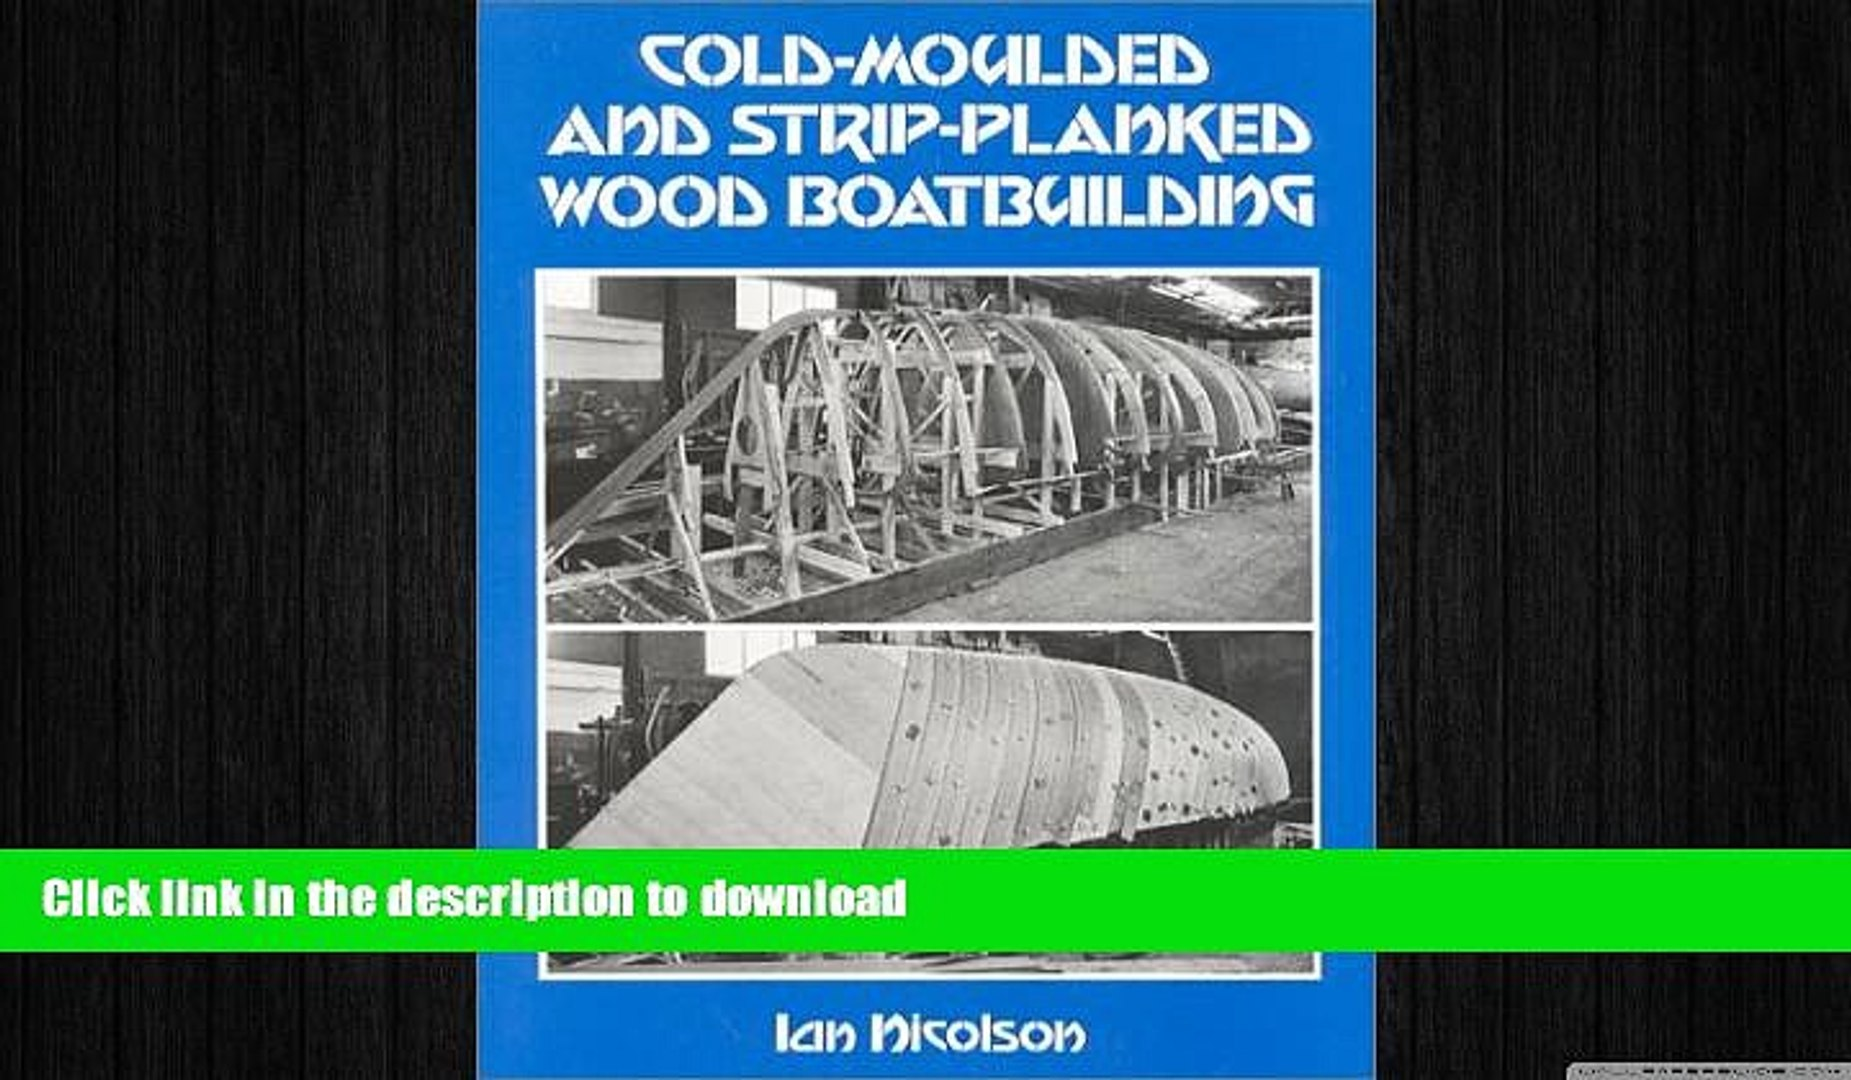 FAVORITE BOOK  Cold-Moulded and Strip-Planked Wood Boatbuilding  BOOK ONLINE